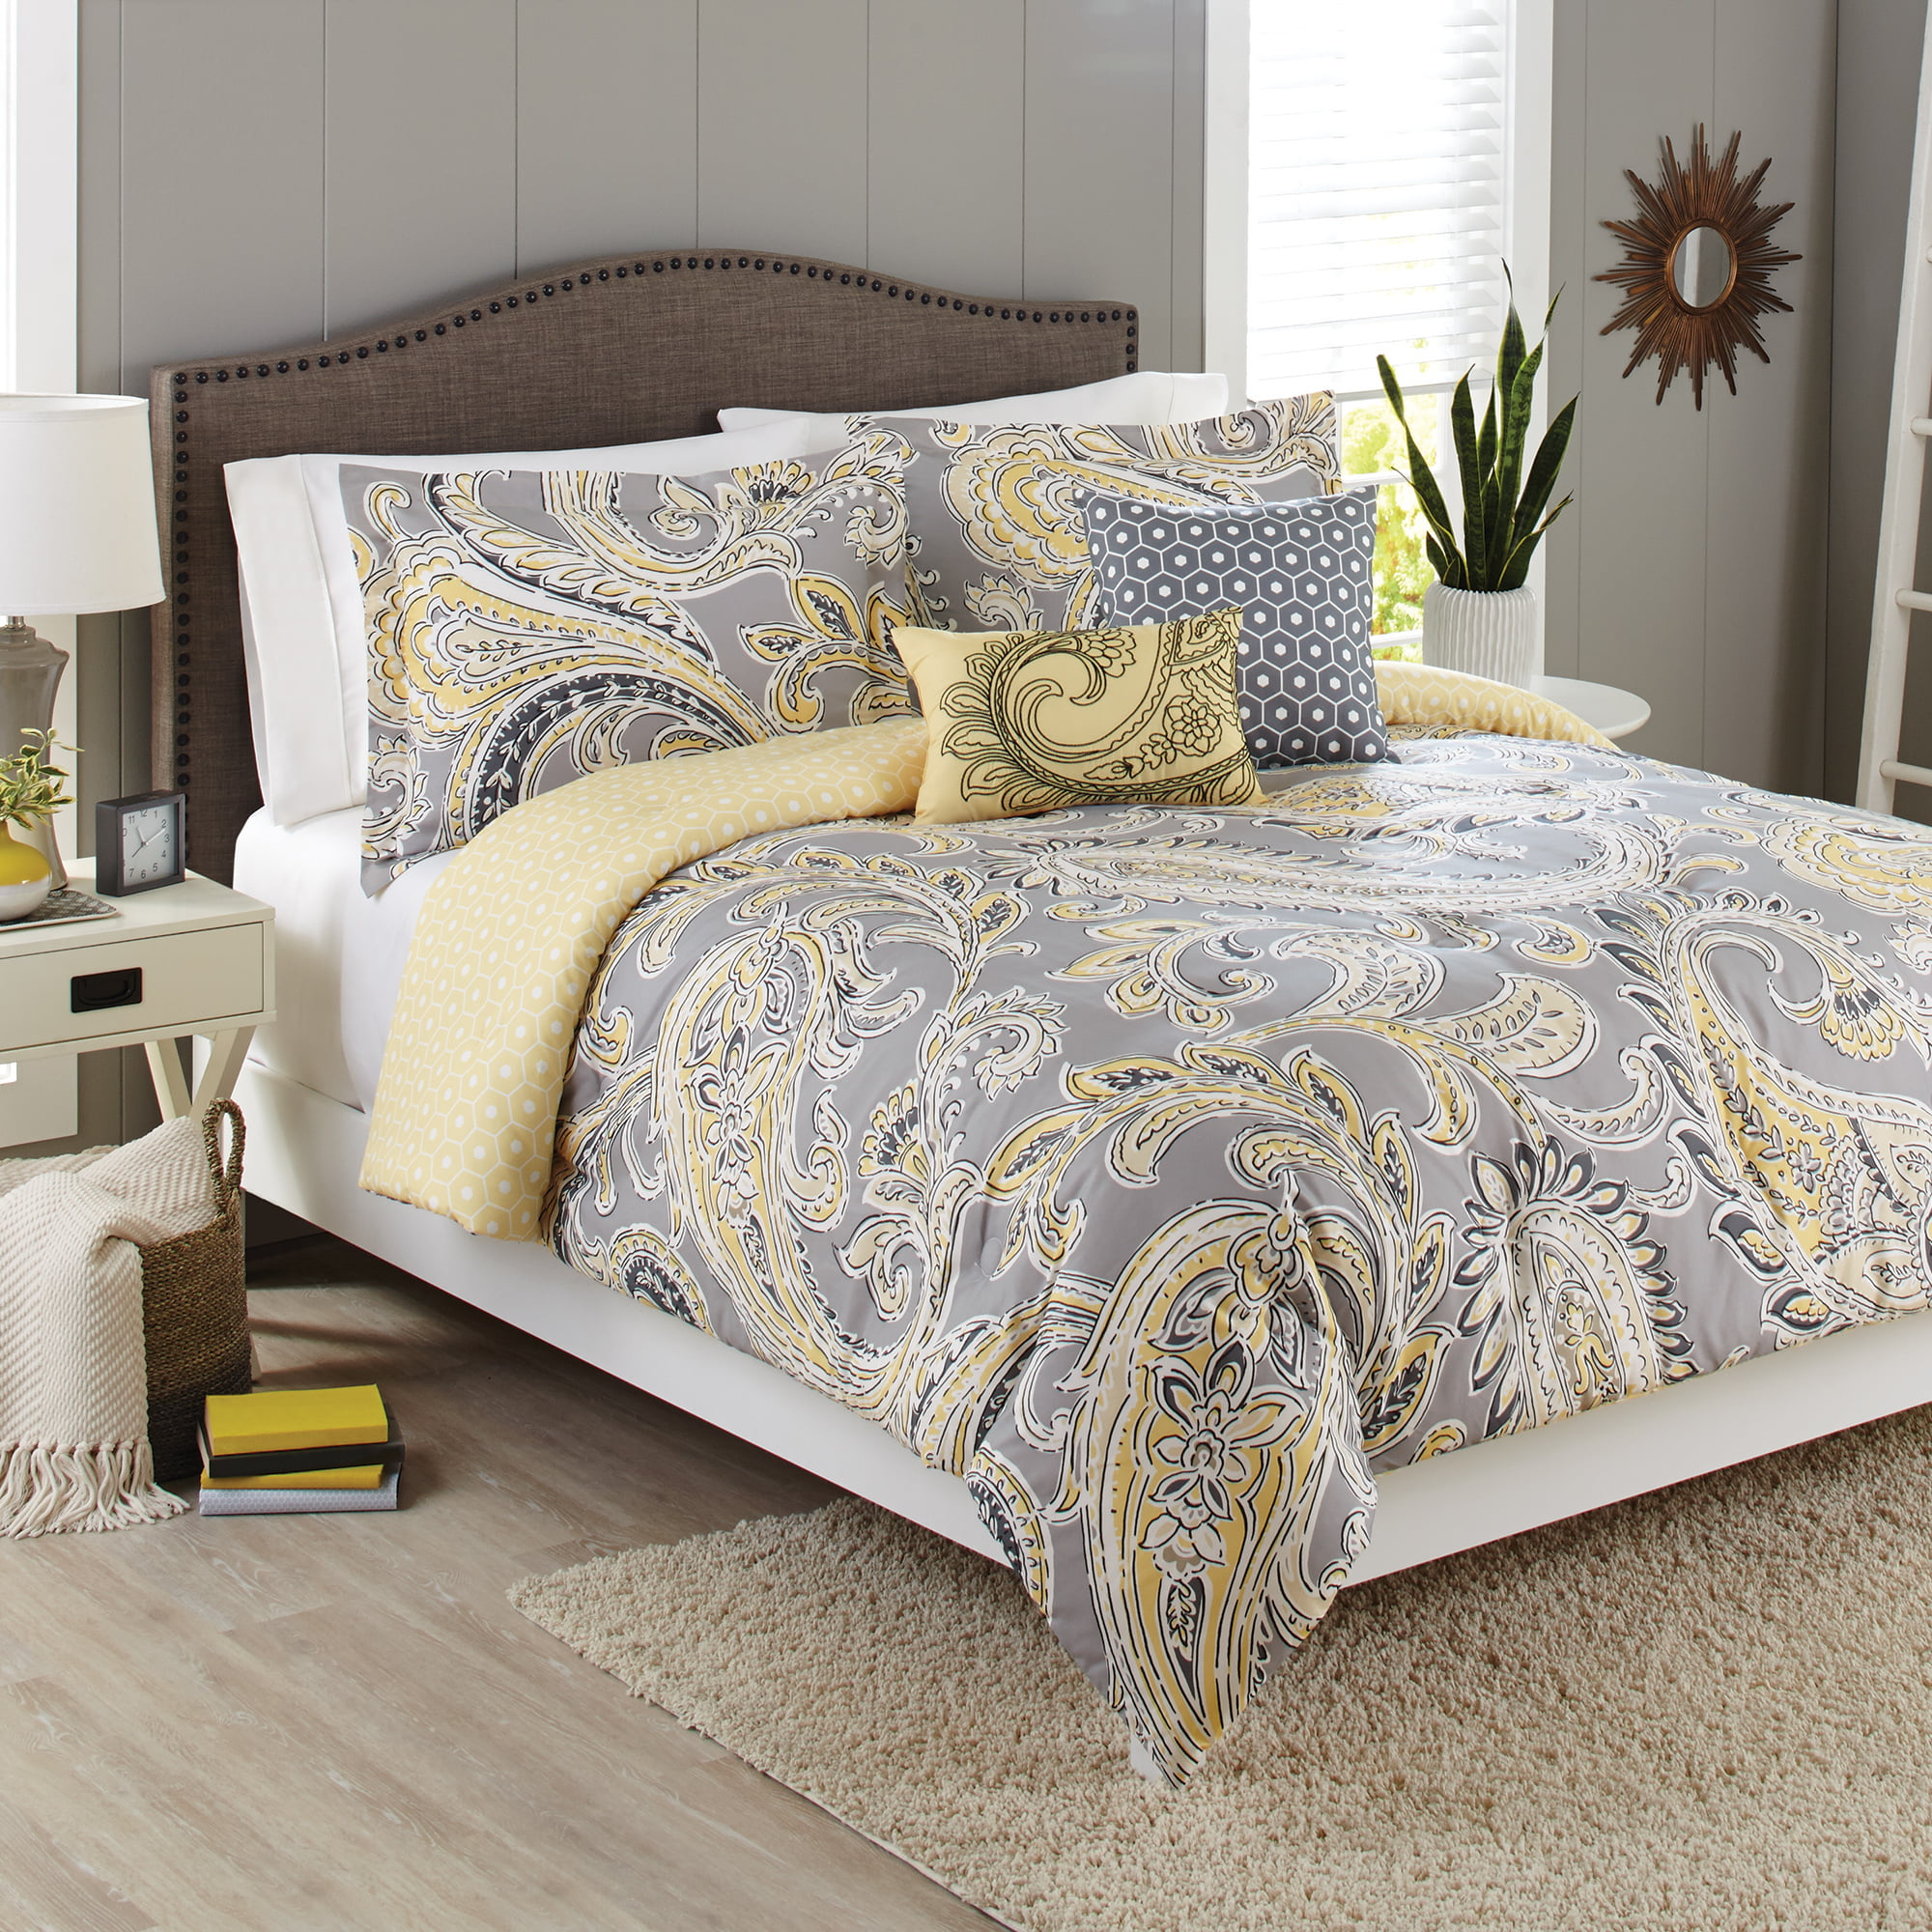 Gray And Yellow Bedroom: Better Homes & Gardens Full Paisley Yellow & Grey